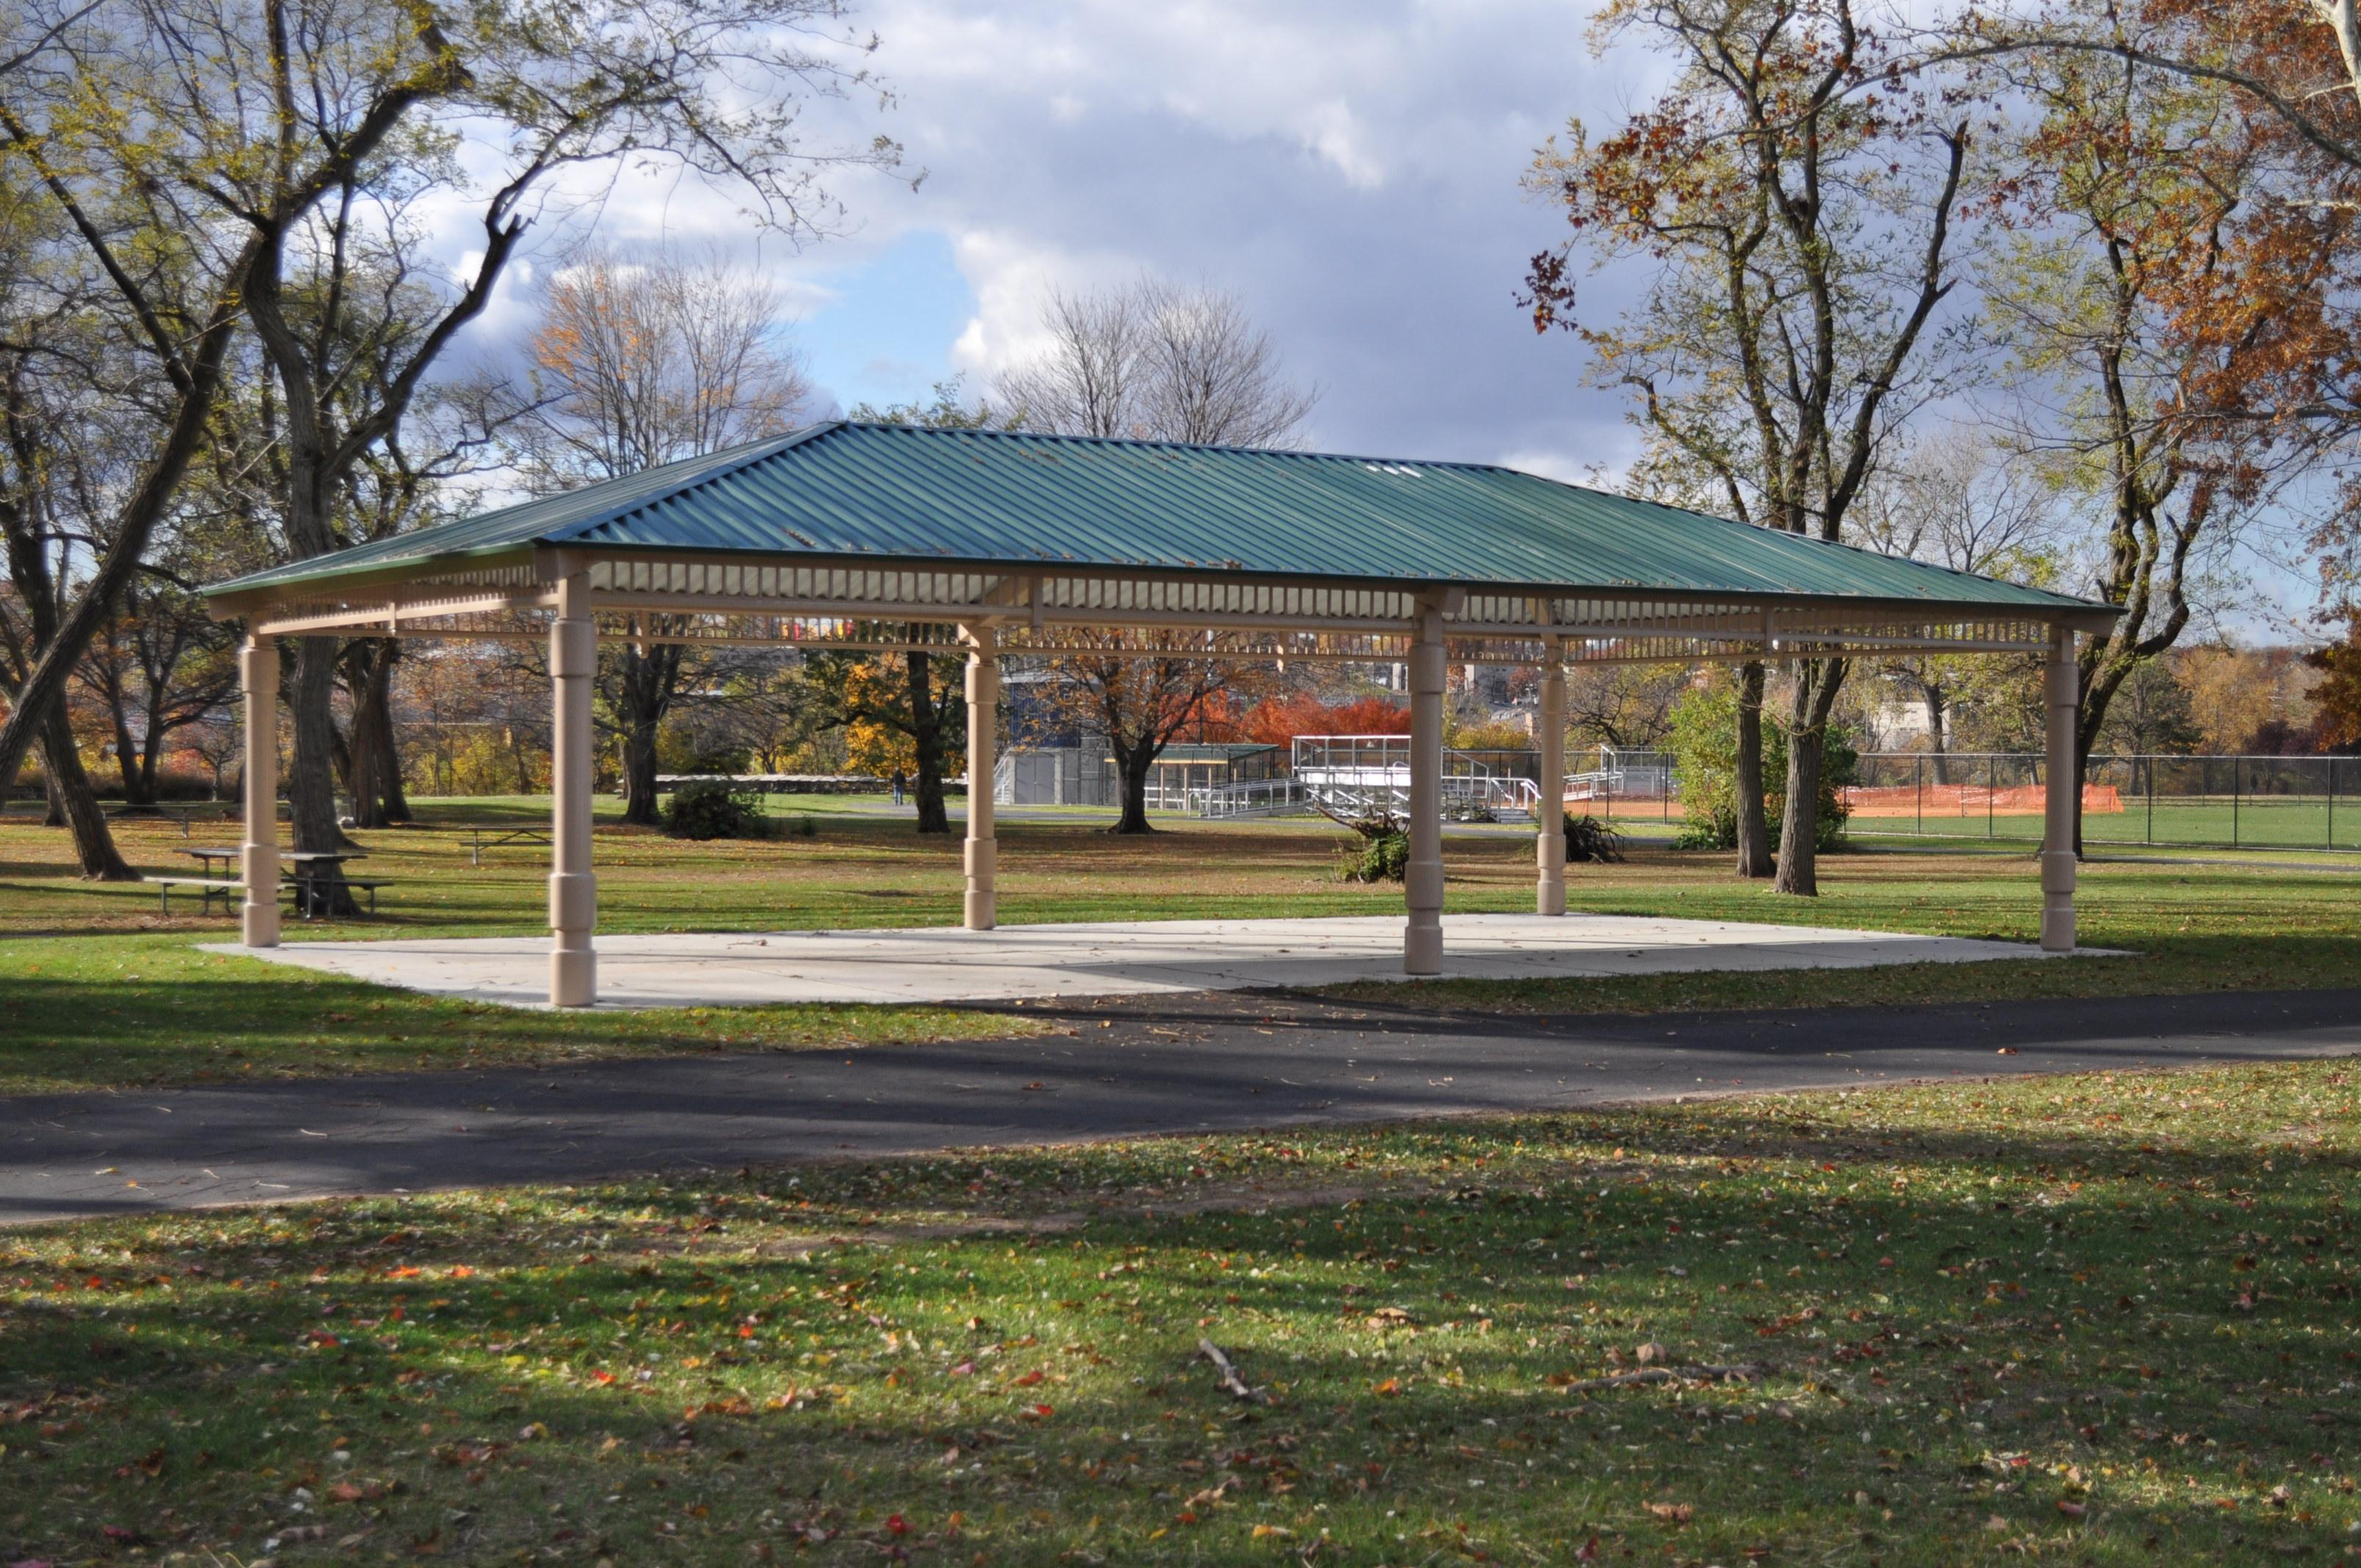 overpeck chat sites Leonia, nj overpeck park dog run there's plenty of room for your pet to play at this fenced, off-leash dog park, which includes a separate area for small pets, benches, and plenty of shade.